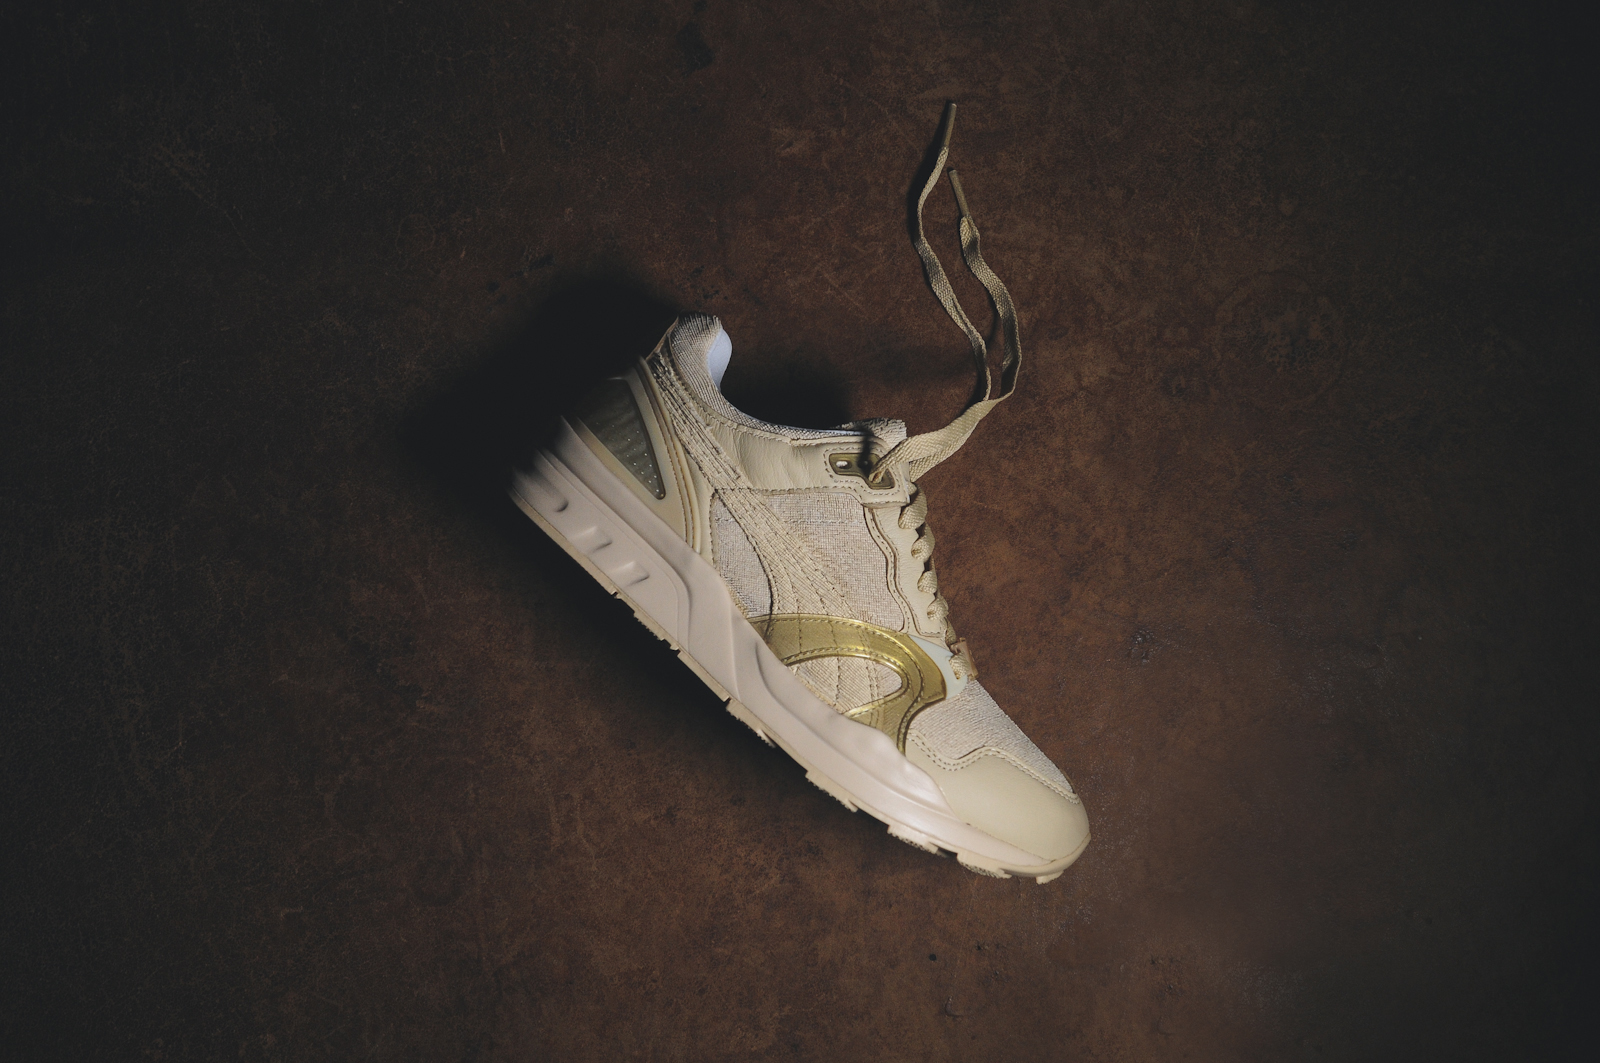 Trinomic XT2-solange-puma-behind-the-bazaar